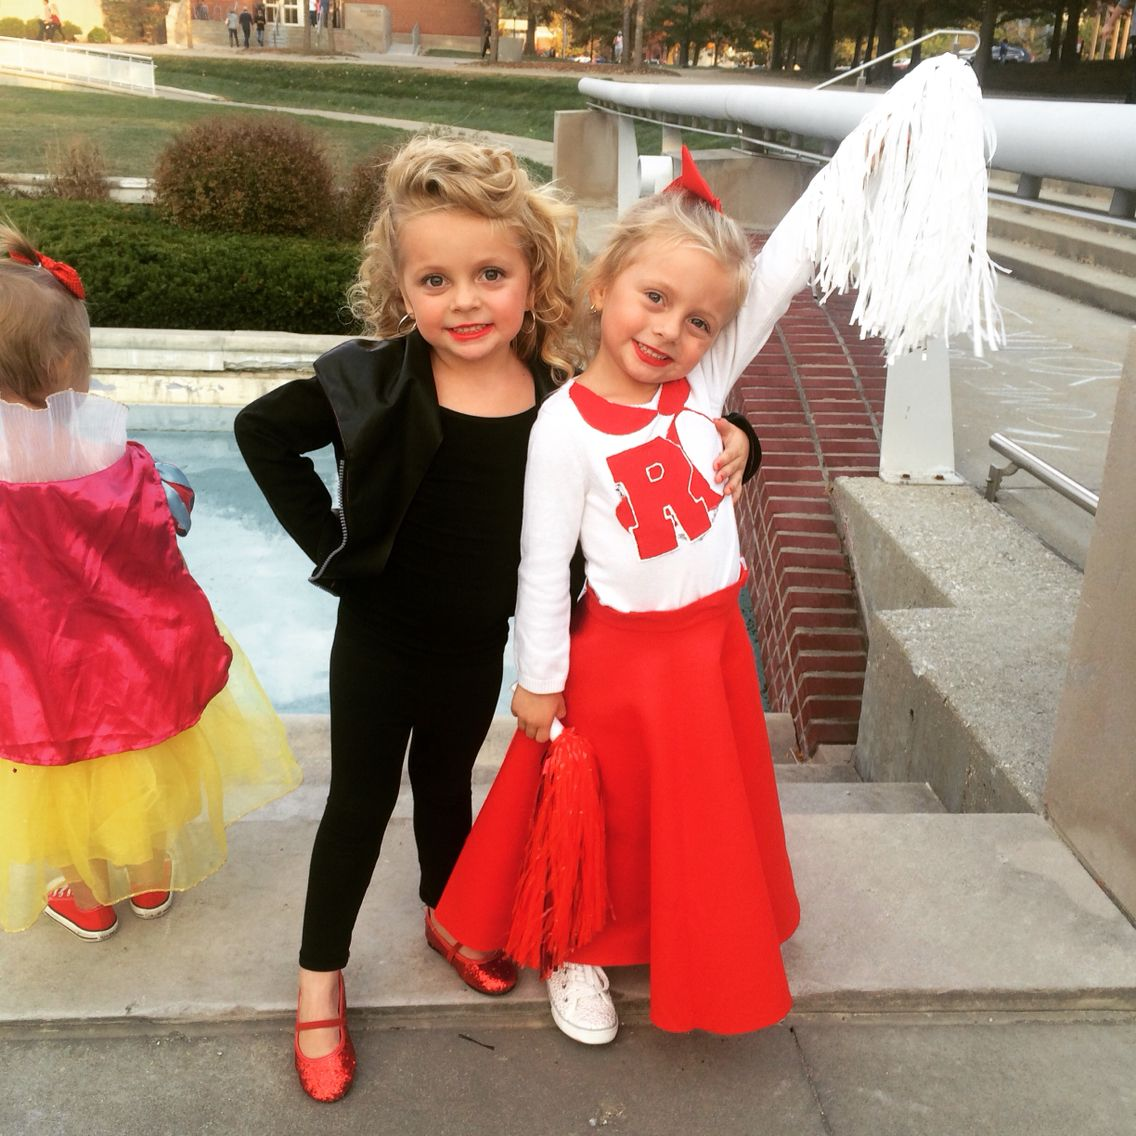 Bad girl Sandy and good girl Sandy from Grease. Twin grease costume.  sc 1 st  Pinterest & Bad girl Sandy and good girl Sandy from Grease. Twin grease costume ...